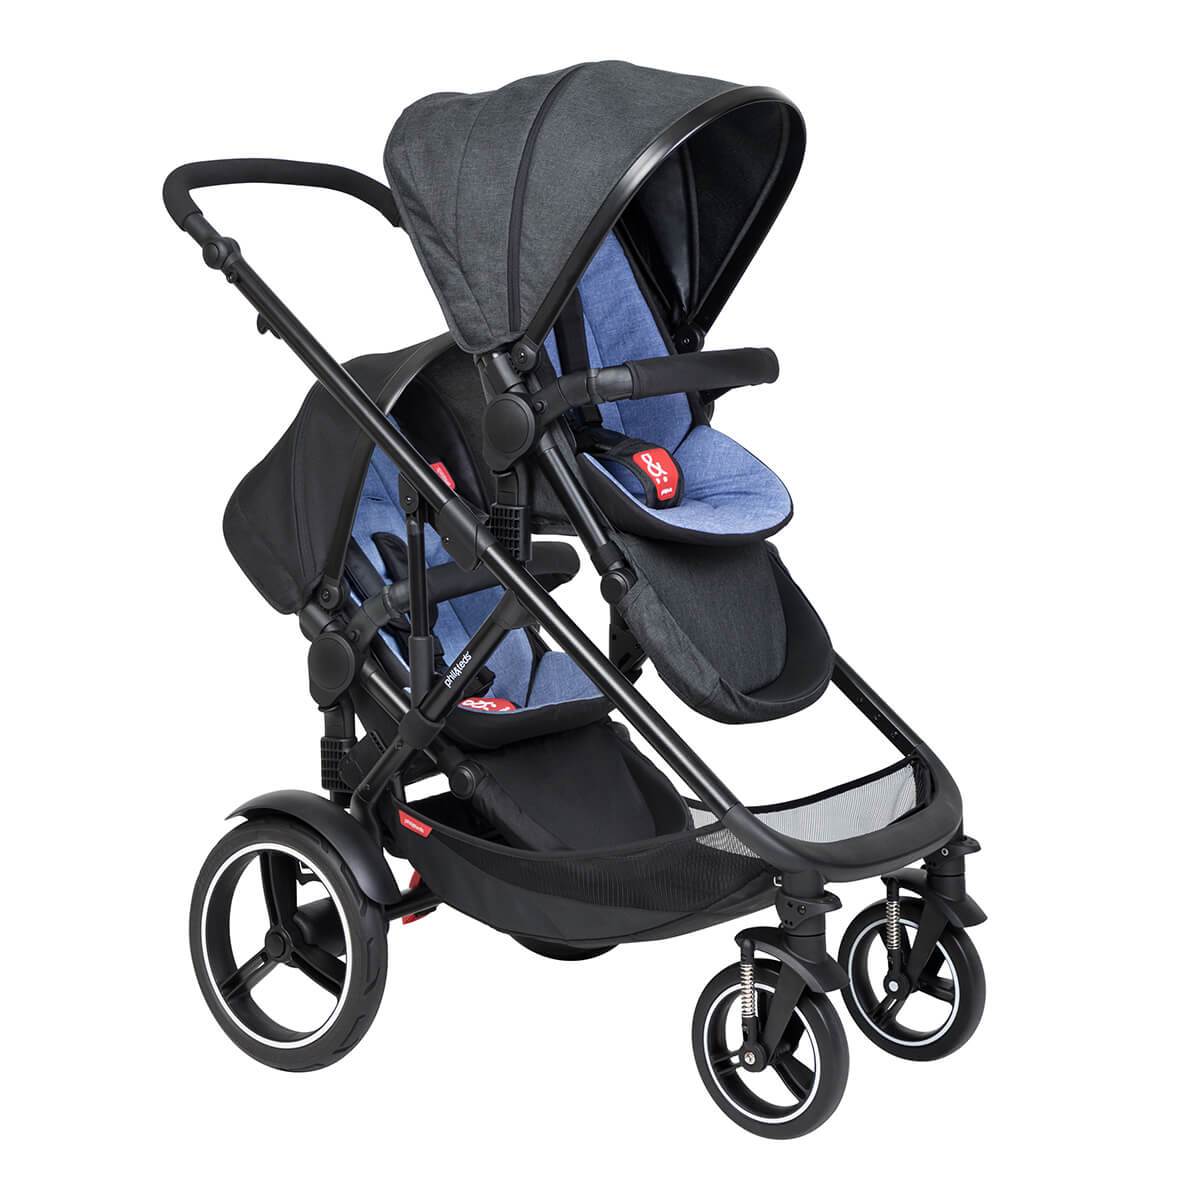 https://cdn.accentuate.io/4546158887017/19119322824809/philteds-voyager-inline-buggy-with-double-kit-in-rear-in-sky-blue-colour-v1625778493194.jpg?1200x1200